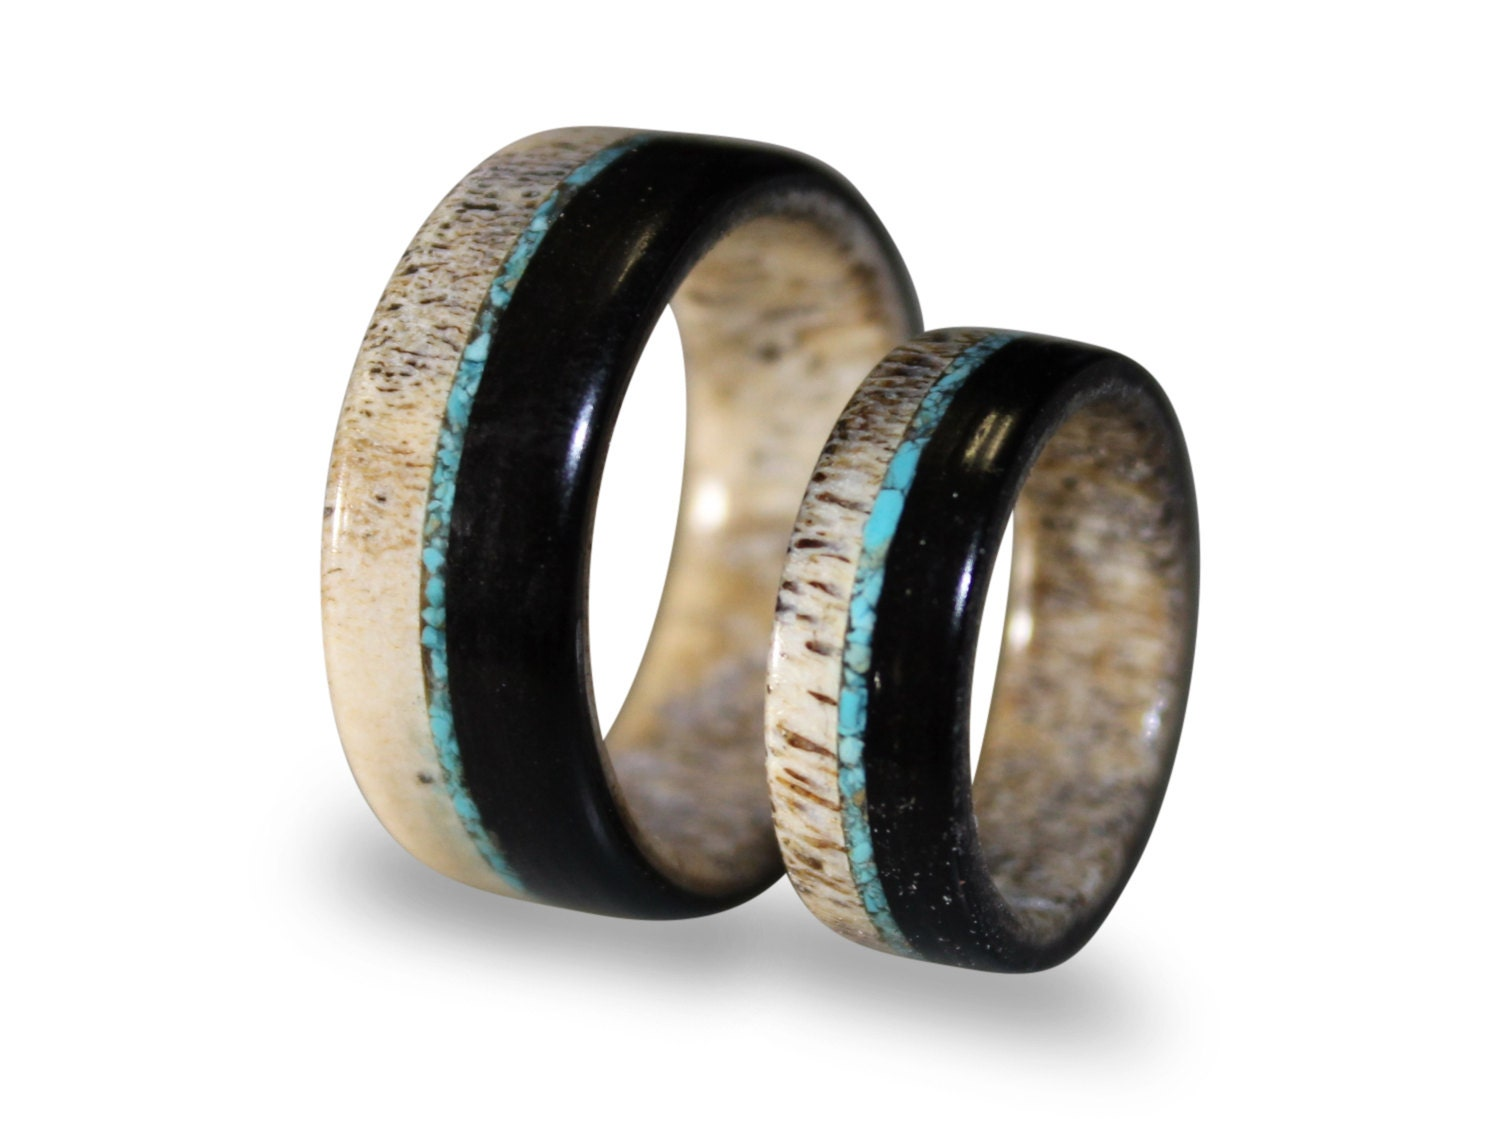 camo for deer rings the wedding men options antler mojave choose